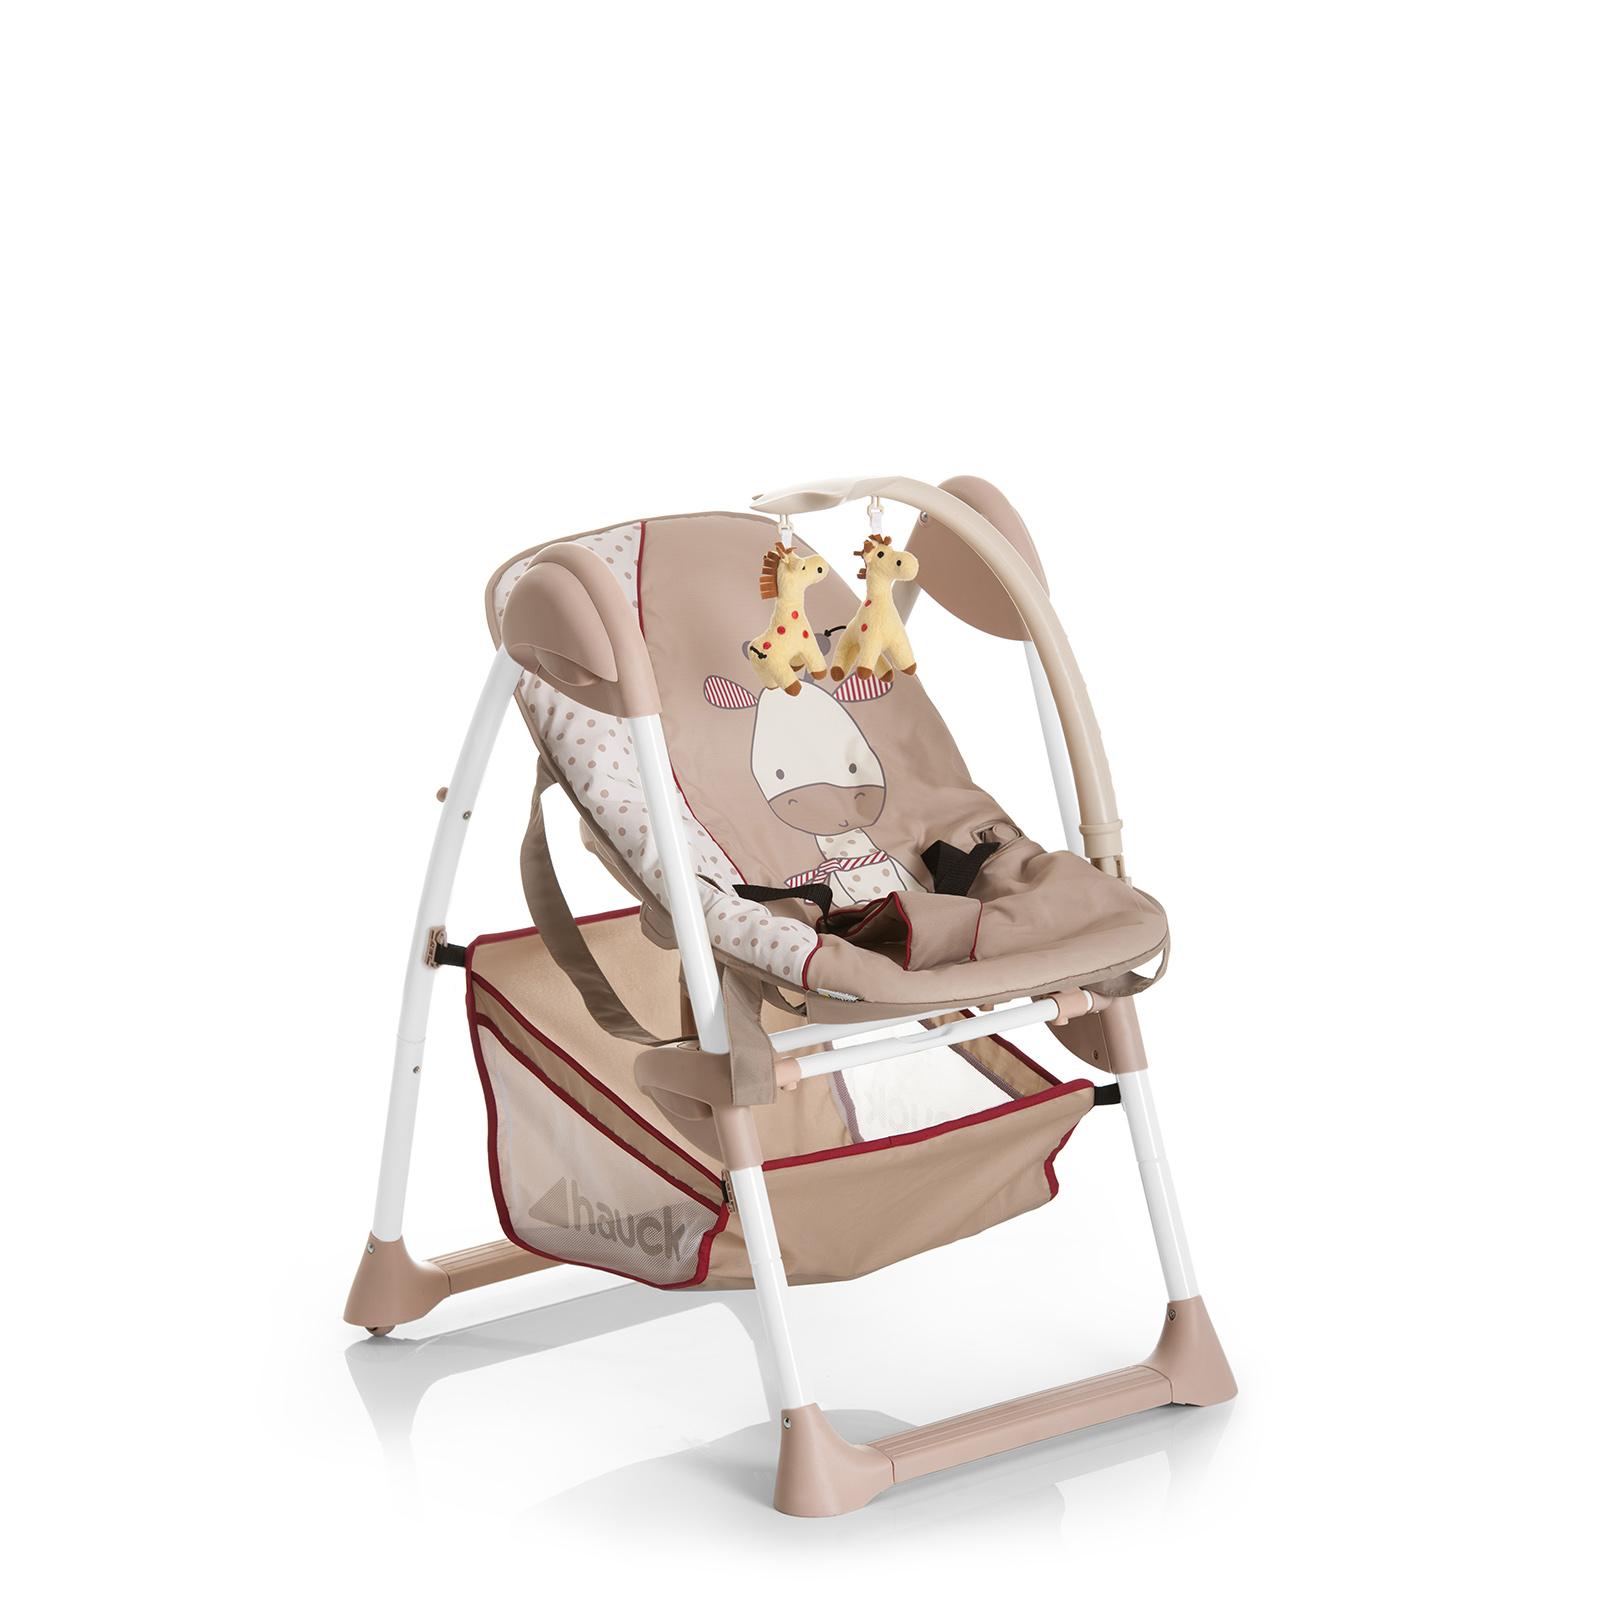 hauck sit n relax 2 in 1 highchair bouncer giraffe buy at online4baby. Black Bedroom Furniture Sets. Home Design Ideas